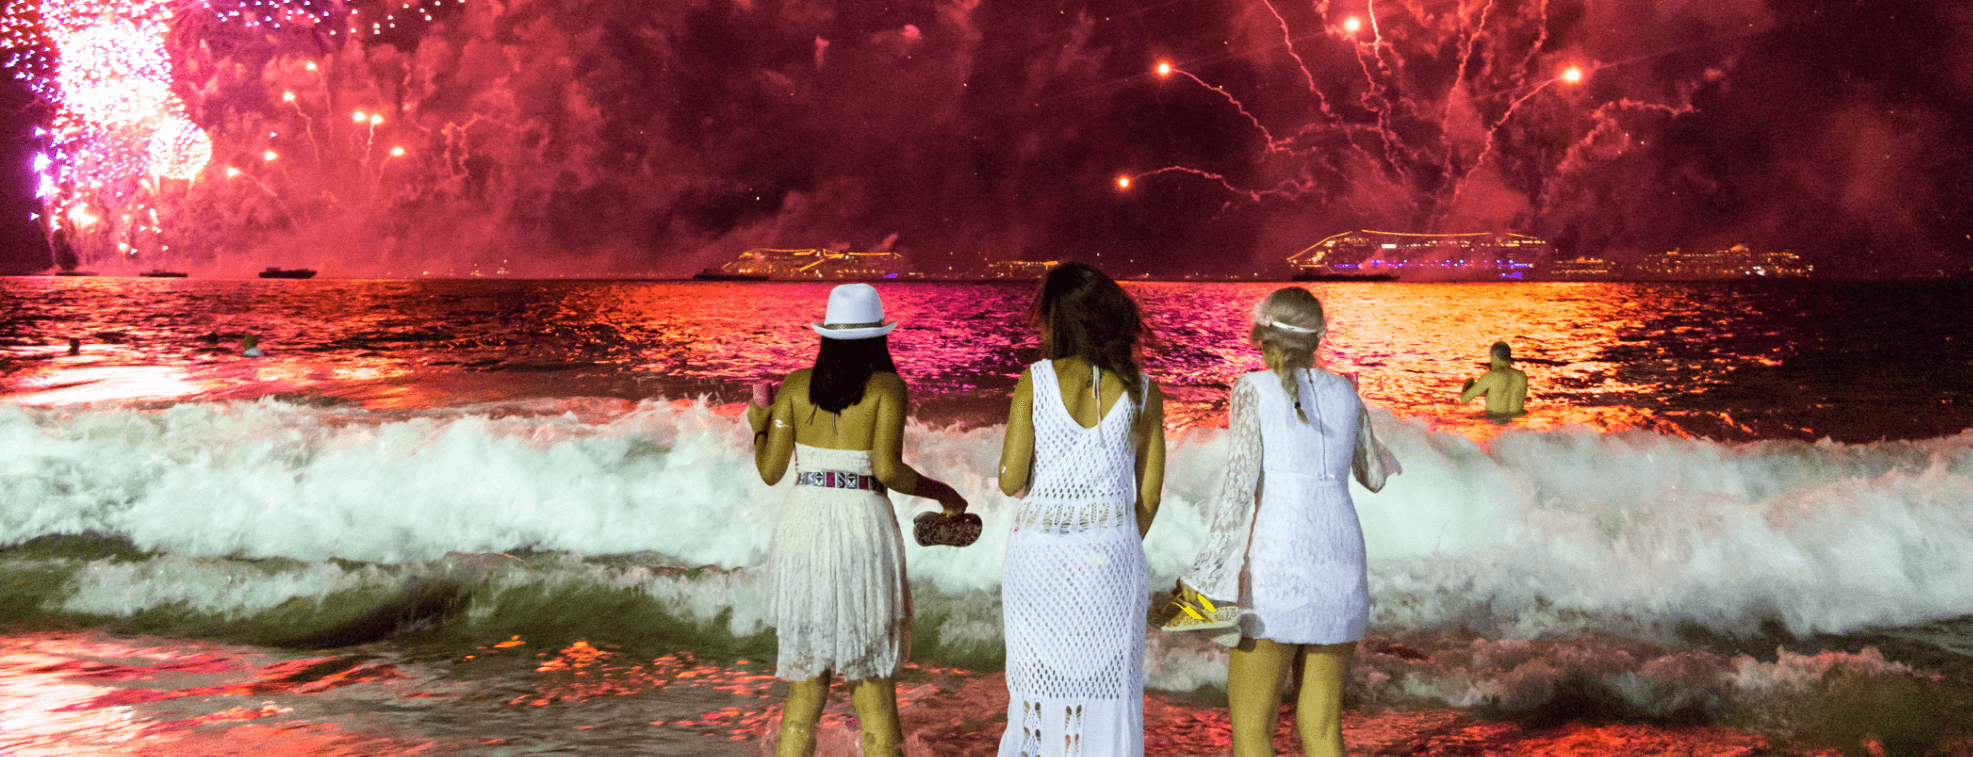 One of Brazilian New Year's Eve Traditions is to wear white and jump over waves